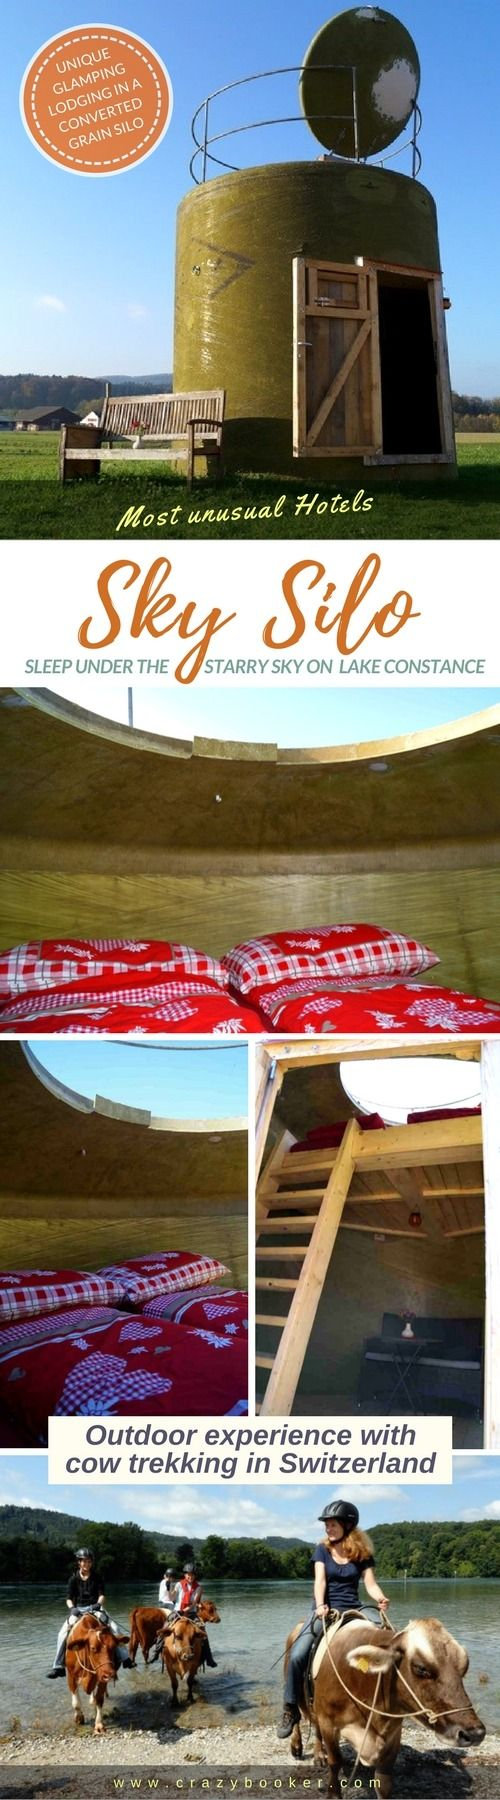 Converted grain silo for romantic open air nights! | This unique accommodation near Lake Constance features an expendable roof to open for stargazing and works perfectly as country getaway for romantic outdoor overnight stays | Learn more on www.crazybooker.com or follow board to discover further unsual hotels & lodgings in #Switzerland! #glamping #starrynight